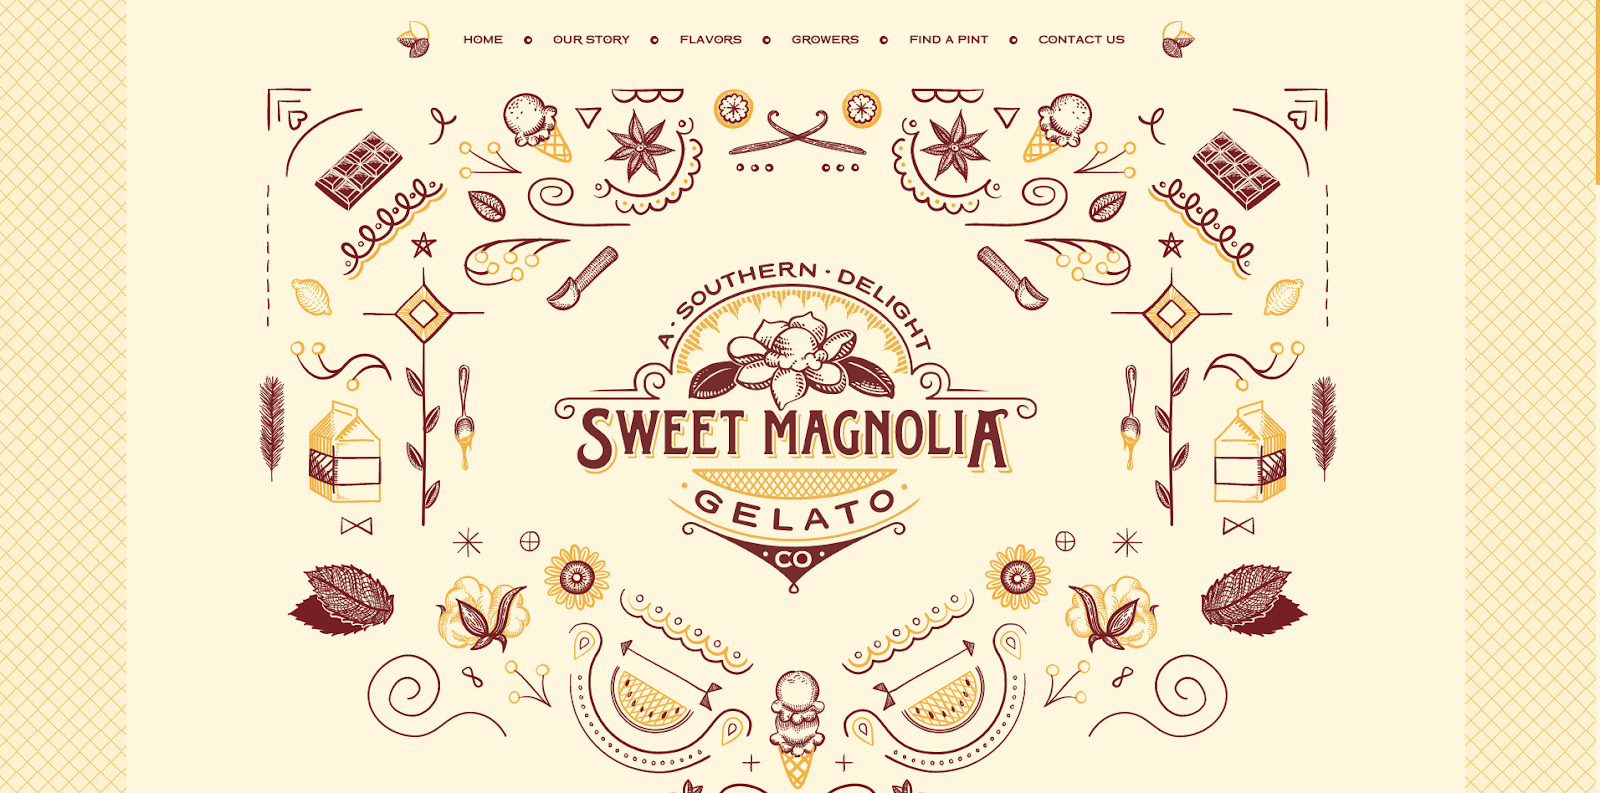 Sweet Magnolia's website uses texture and kitchen-inspired textures and patterns to tell people about its gelato.